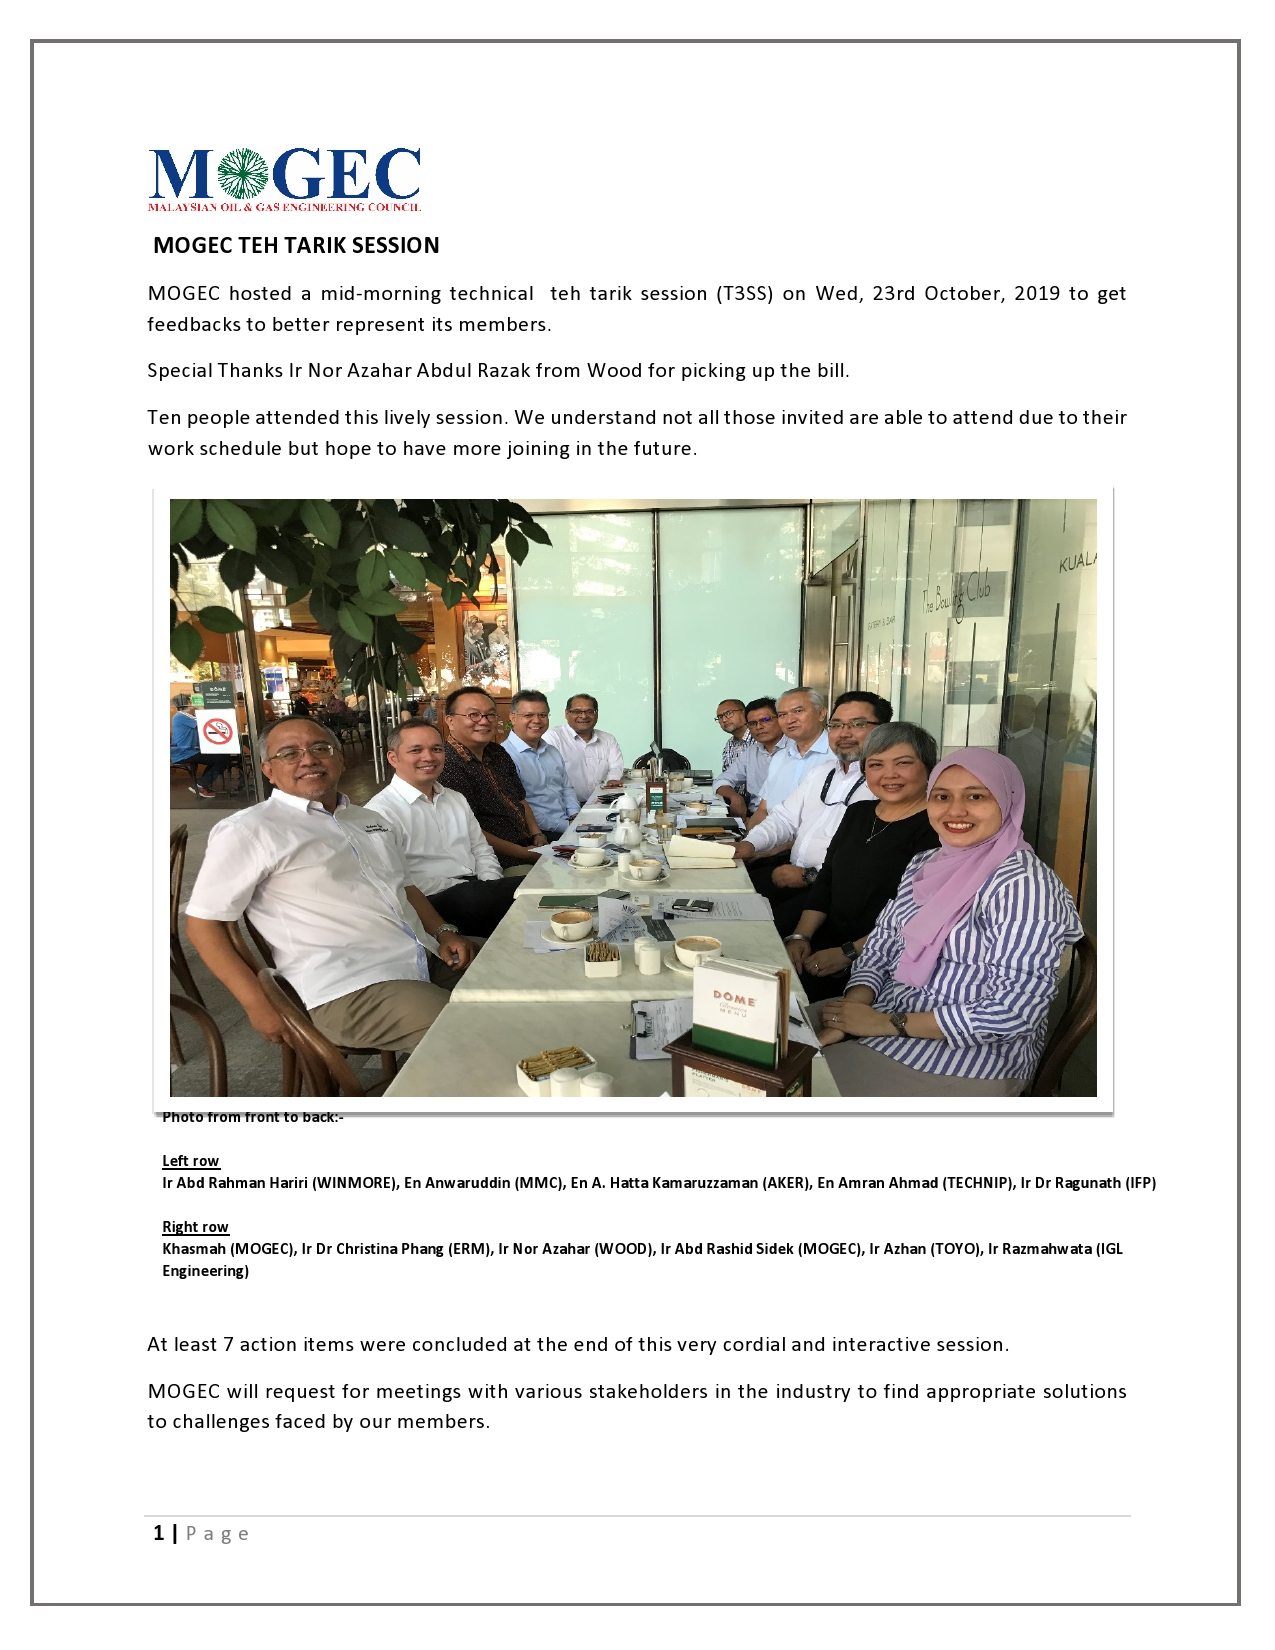 MOGEC TECHNICAL TEH TARIK SESSION page0001